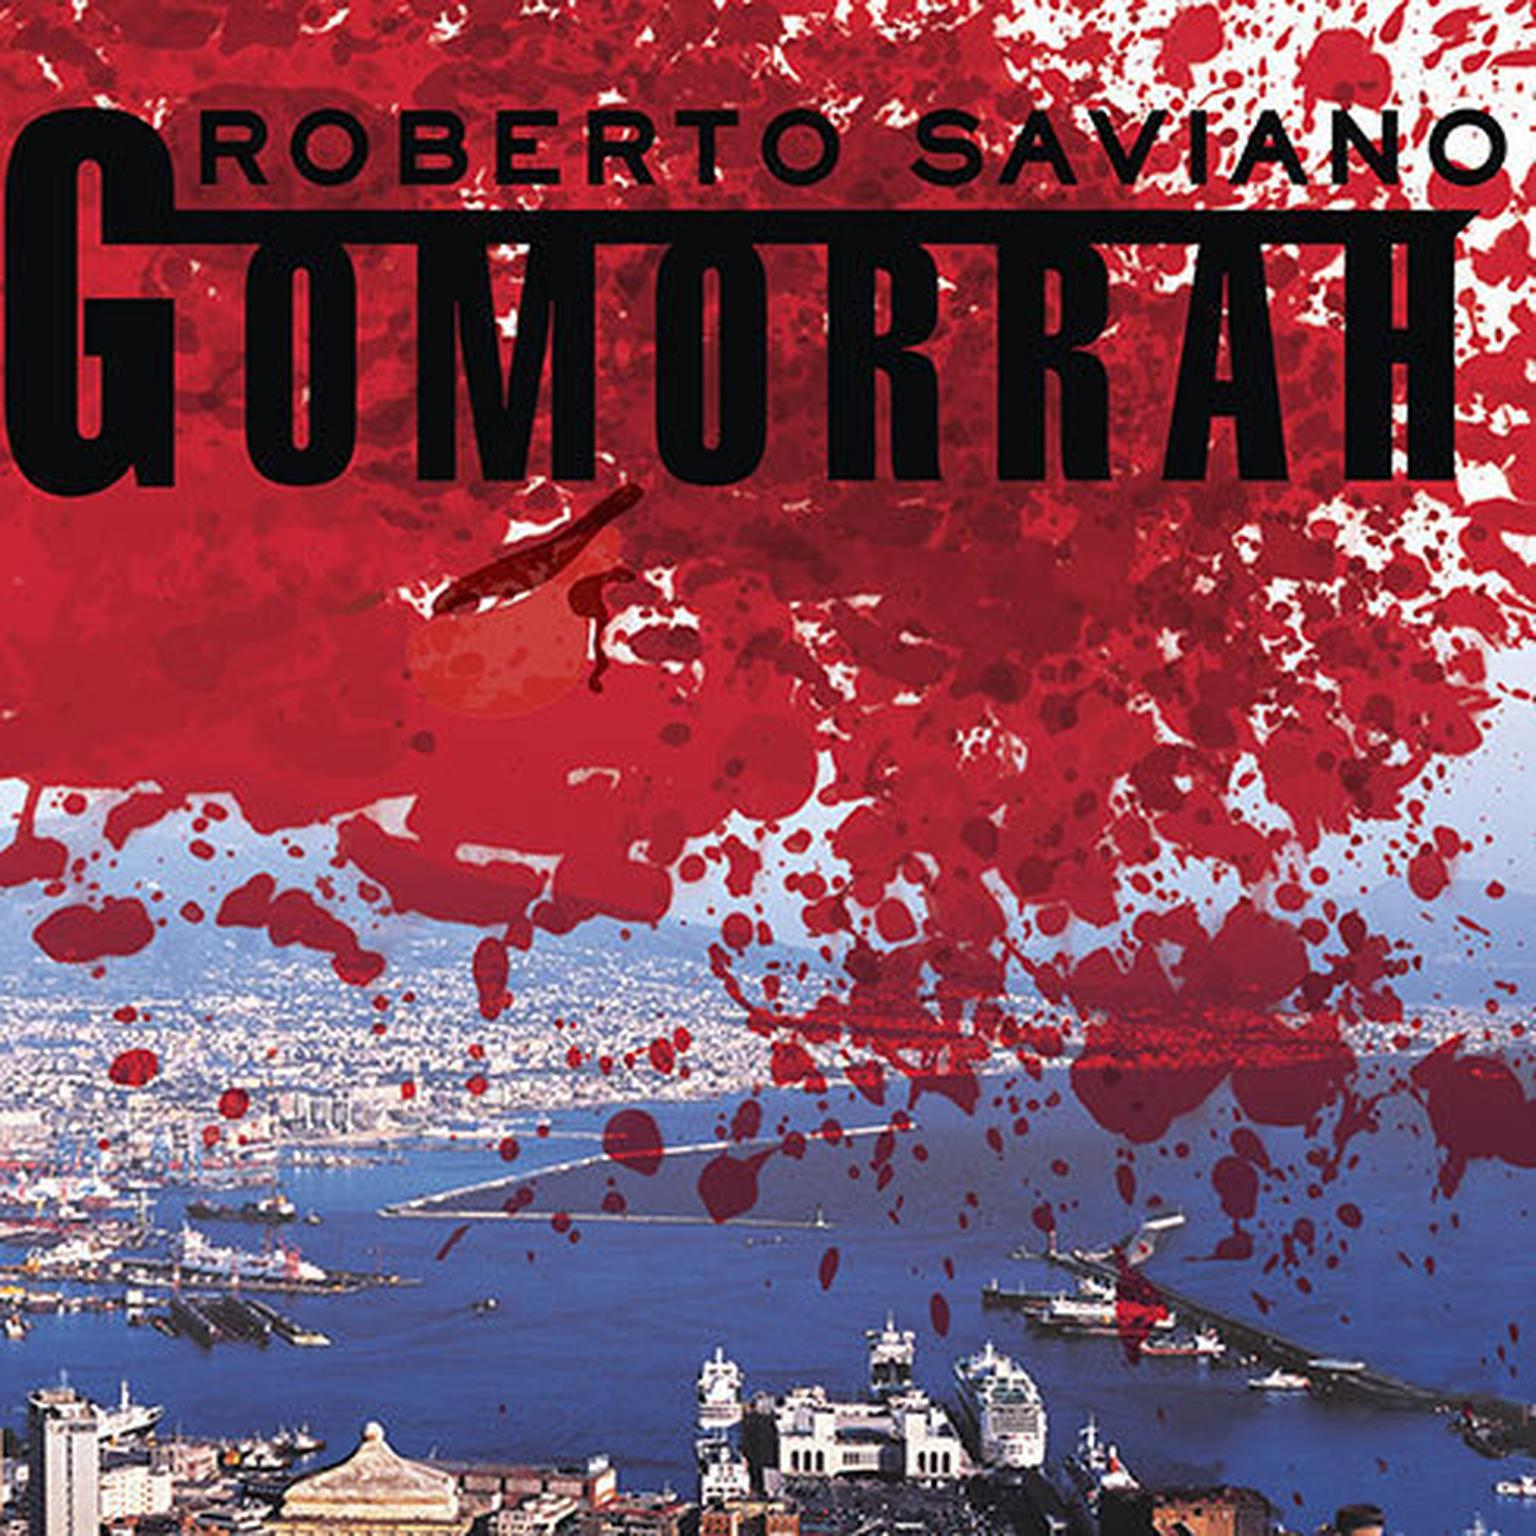 A Personal Journey into the Violent International Empire of Naples' Organized Crime System - Roberto Saviano